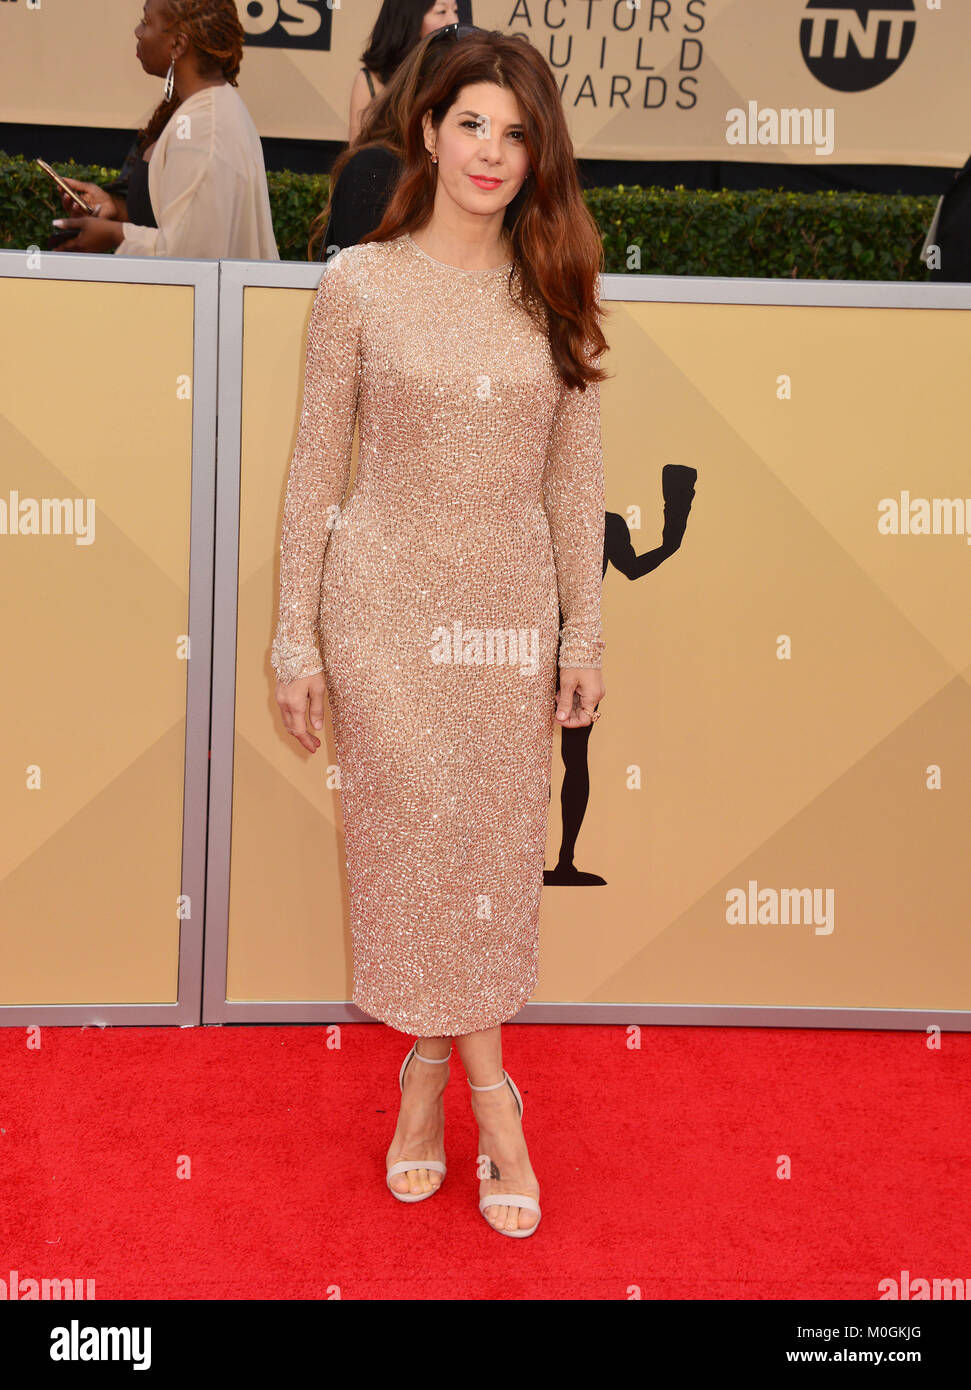 Los Angeles, USA. 21st Jan, 2018. Marisa Tomei 148 attends the 24th Annual Screen Actors Guild Awards at The Shrine - Stock Image